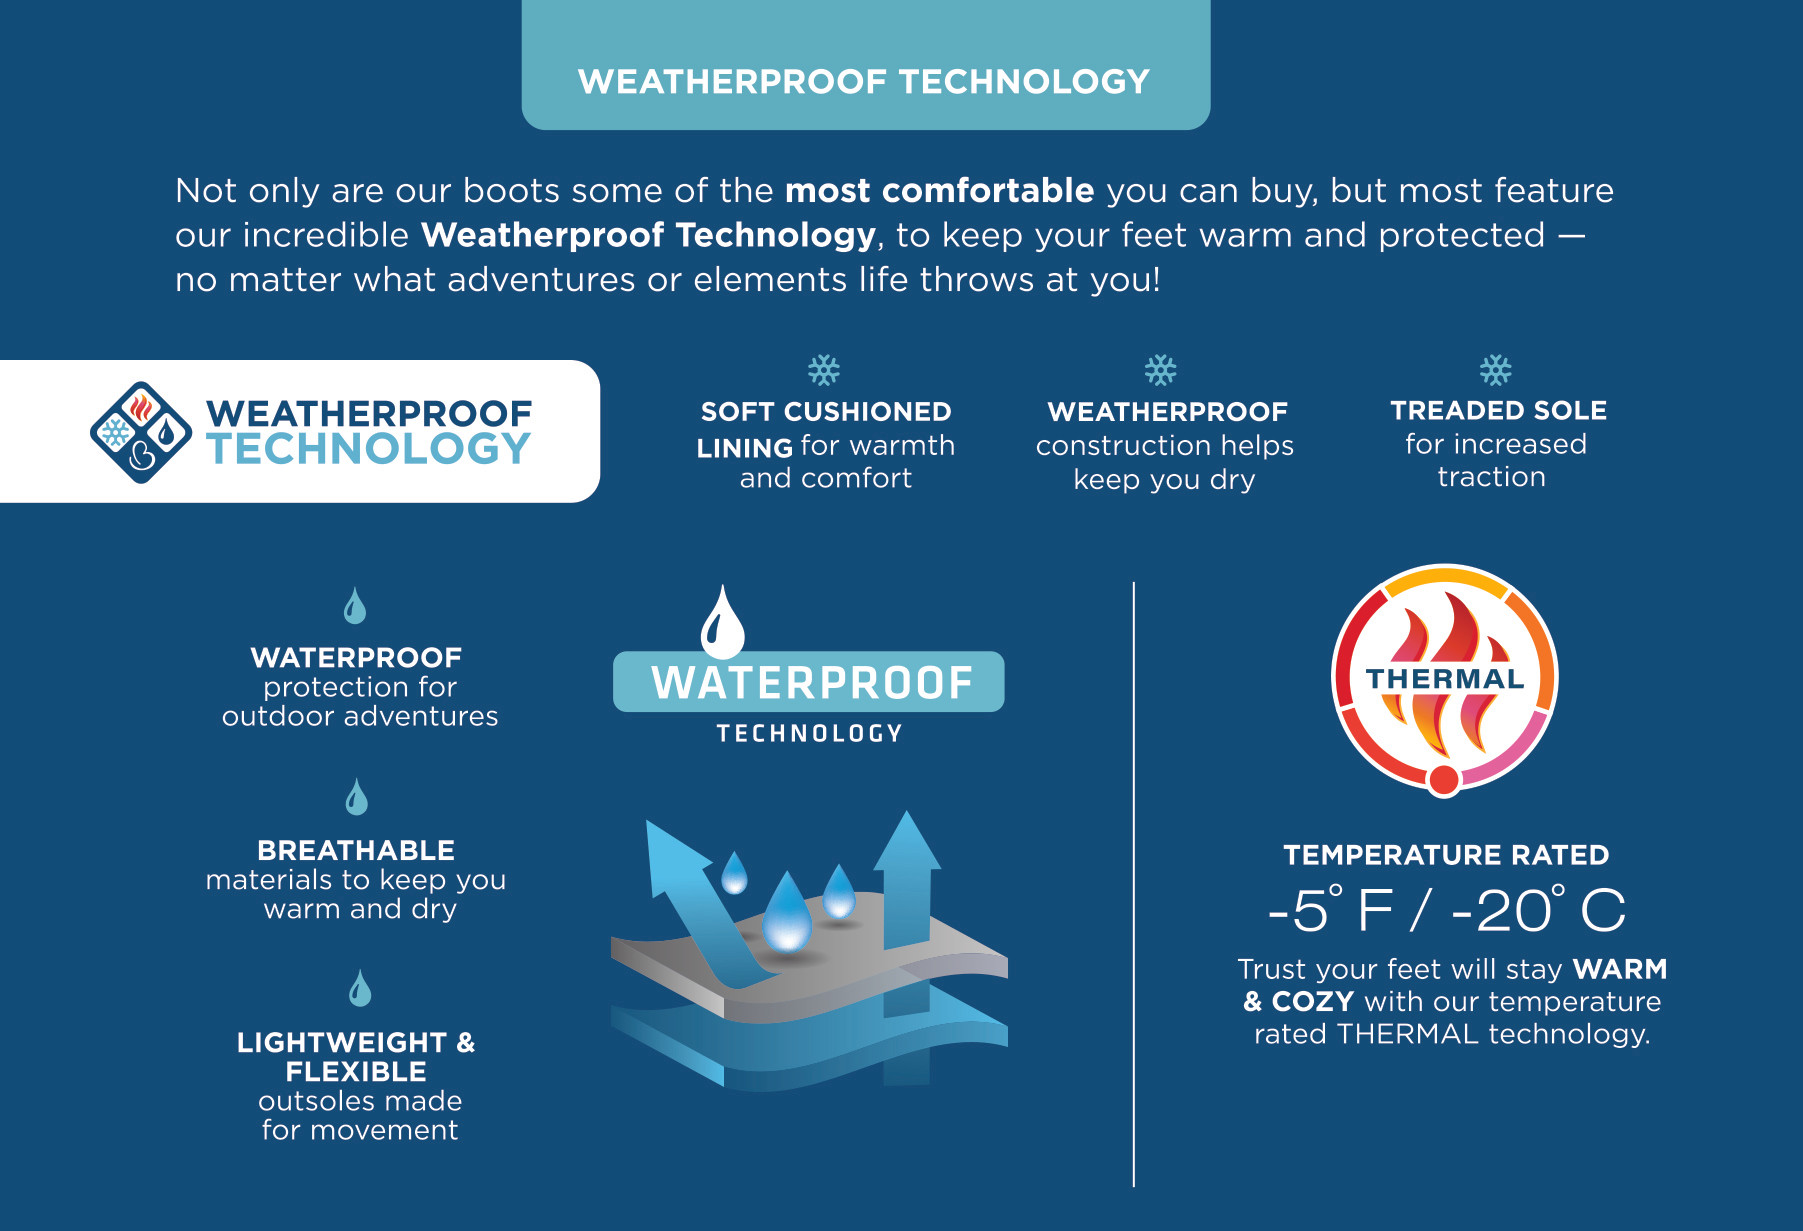 Weatherproof Tech